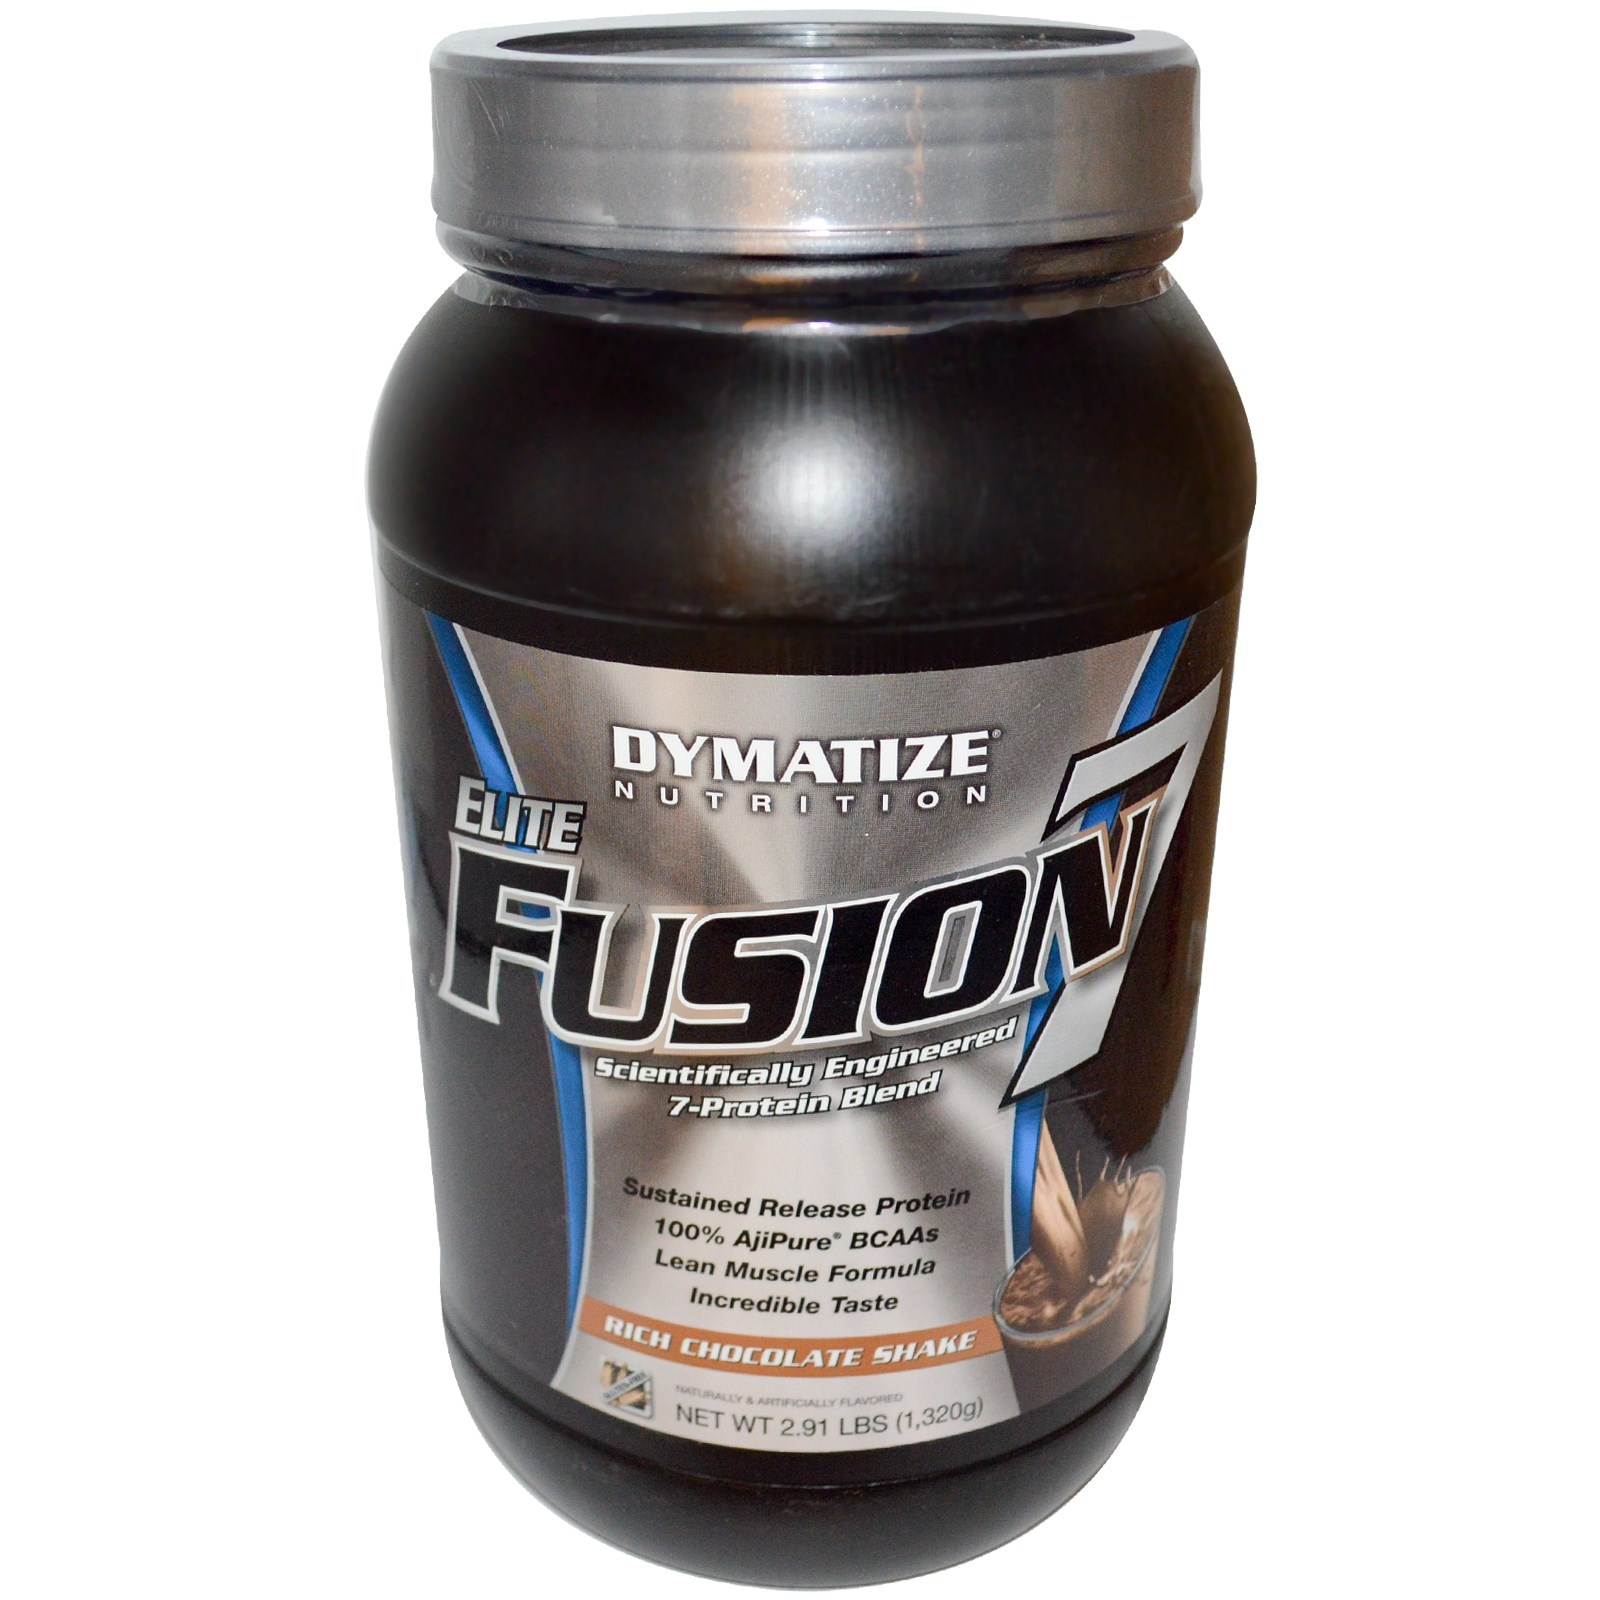 DYMATIZE NUTRITION Elite Fusion 7 Rich Chocolate Shake 2 lbs